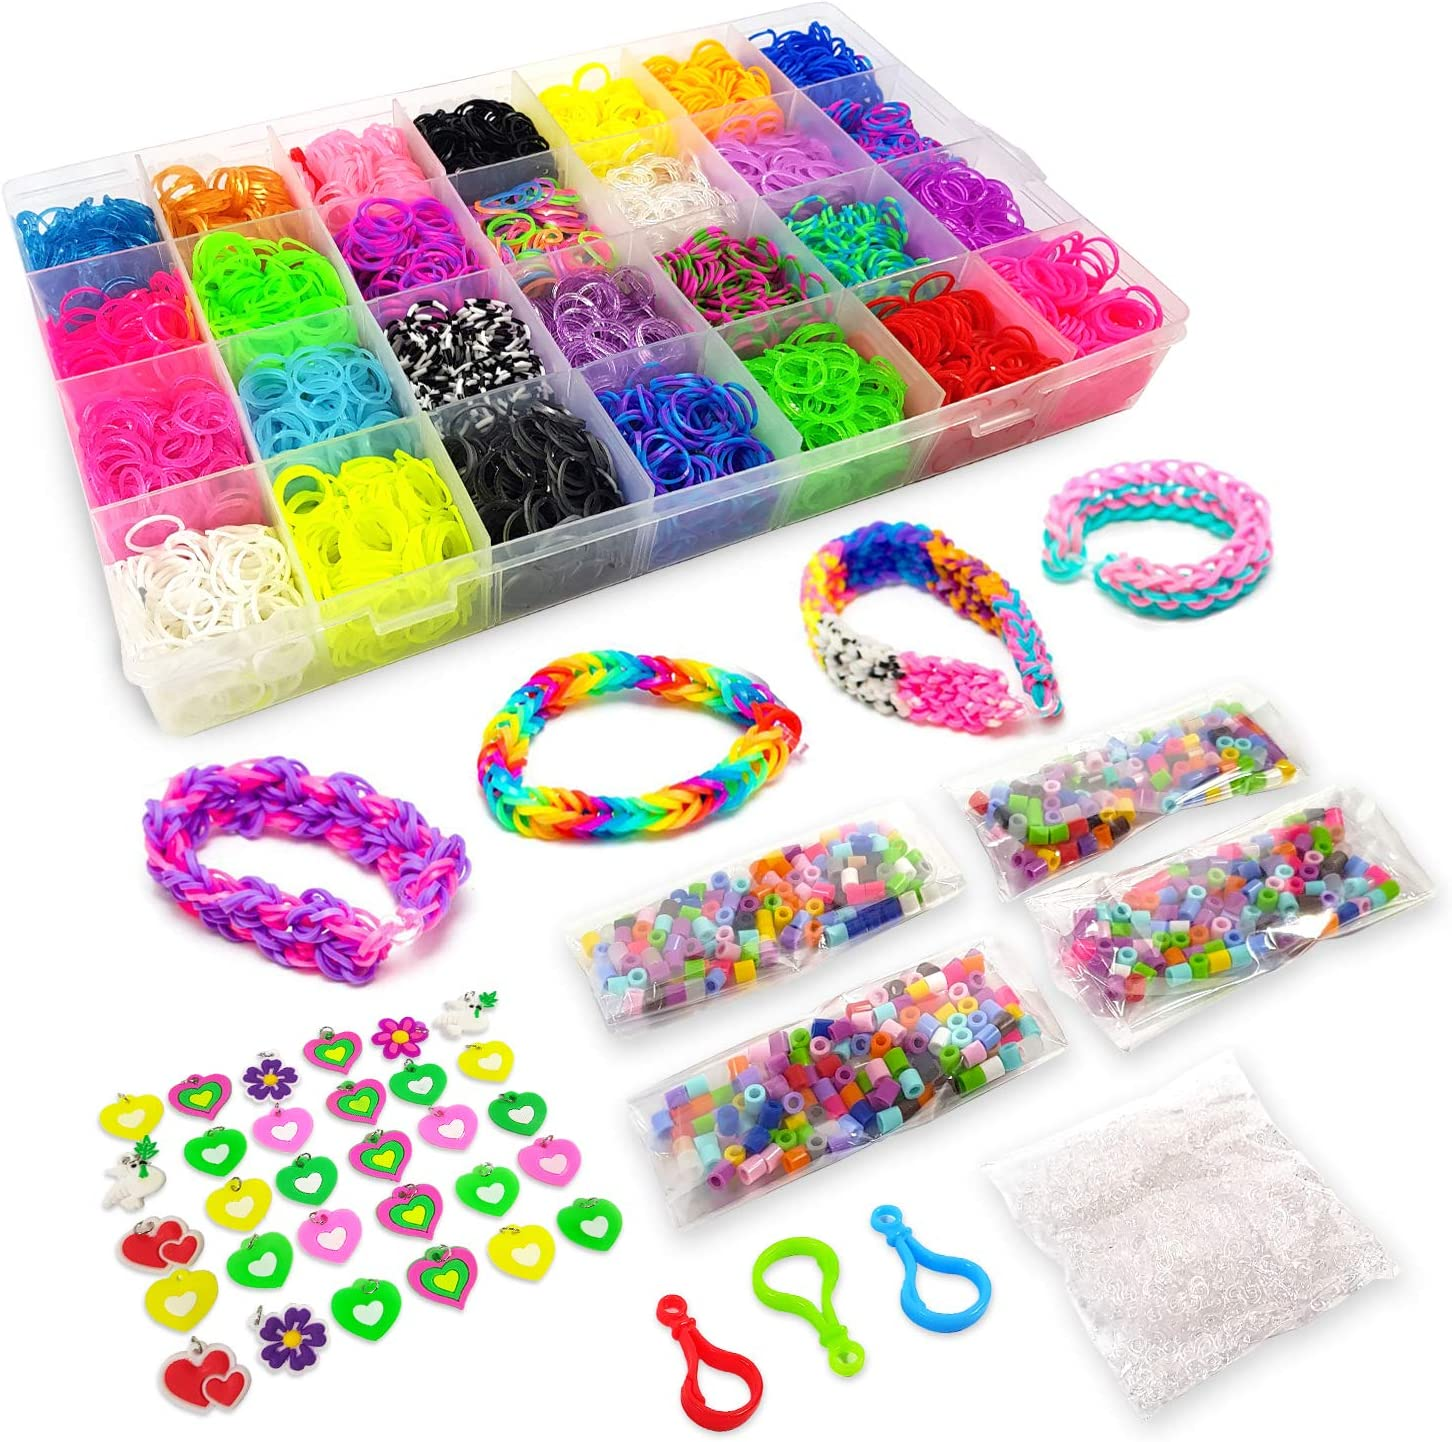 Rainbow Loom Rubber Band Bracelet Making Kit Kids Hobby Arts /& Crafts